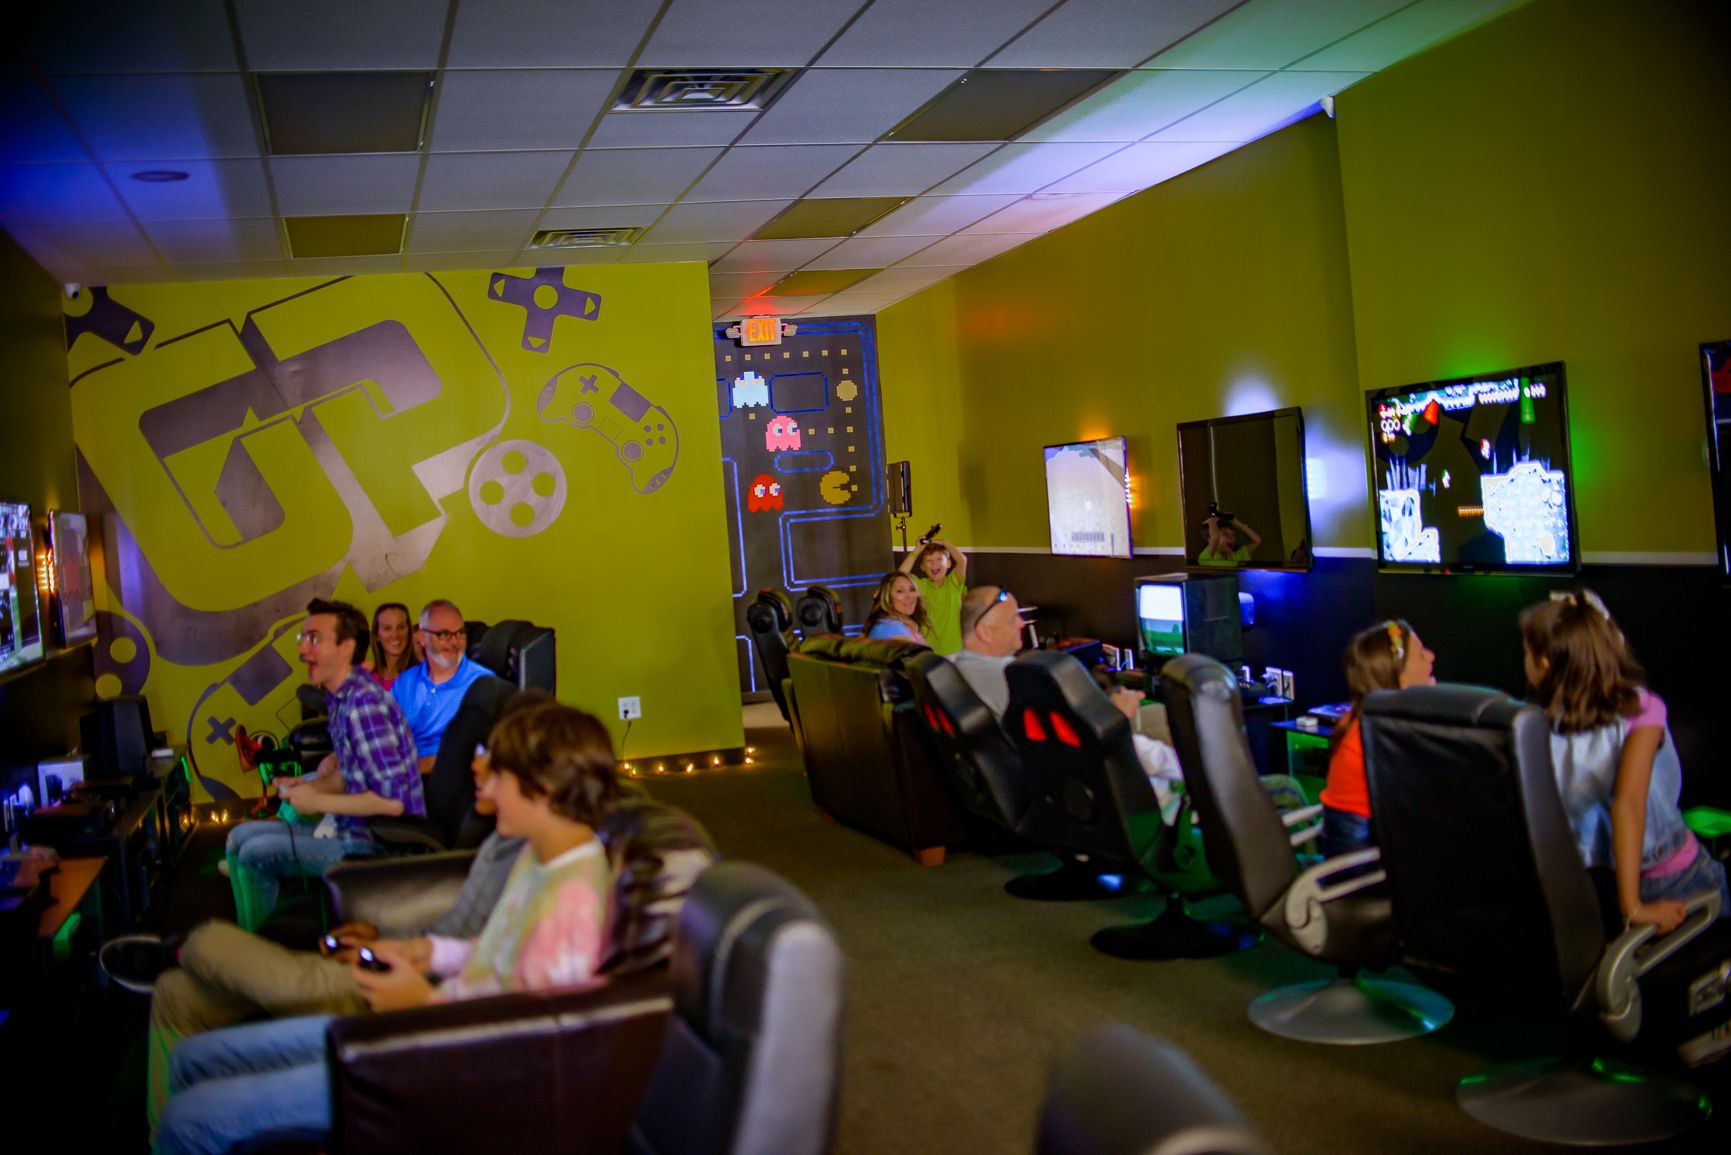 Open Lounge Tomorrow Gaming Lounge Video Game Games